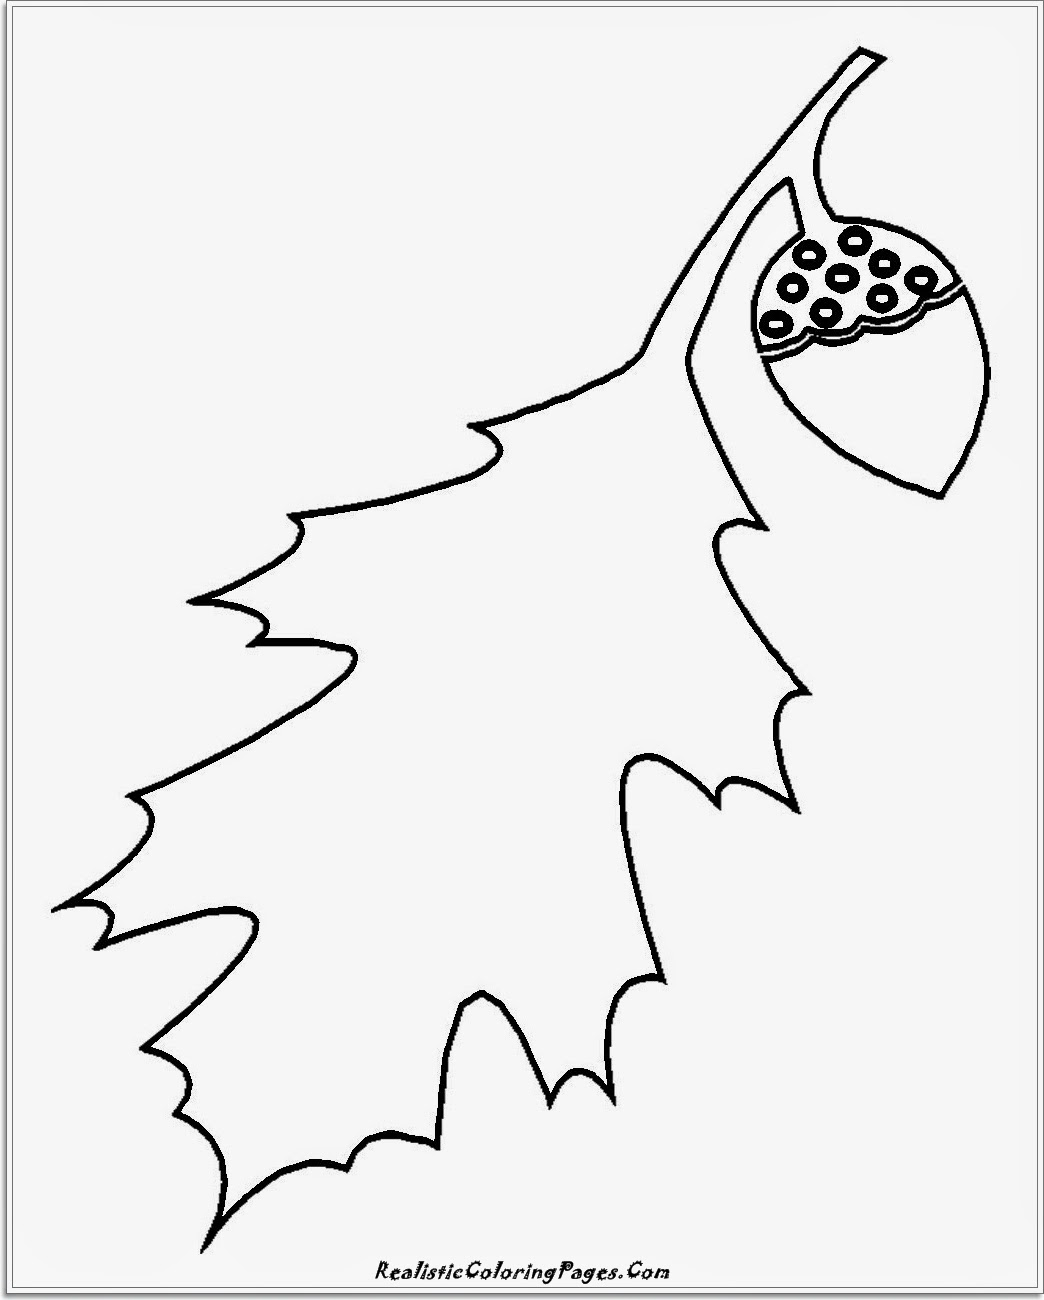 simple nature coloring pages get this simple nature coloring pages to print for nature coloring pages simple